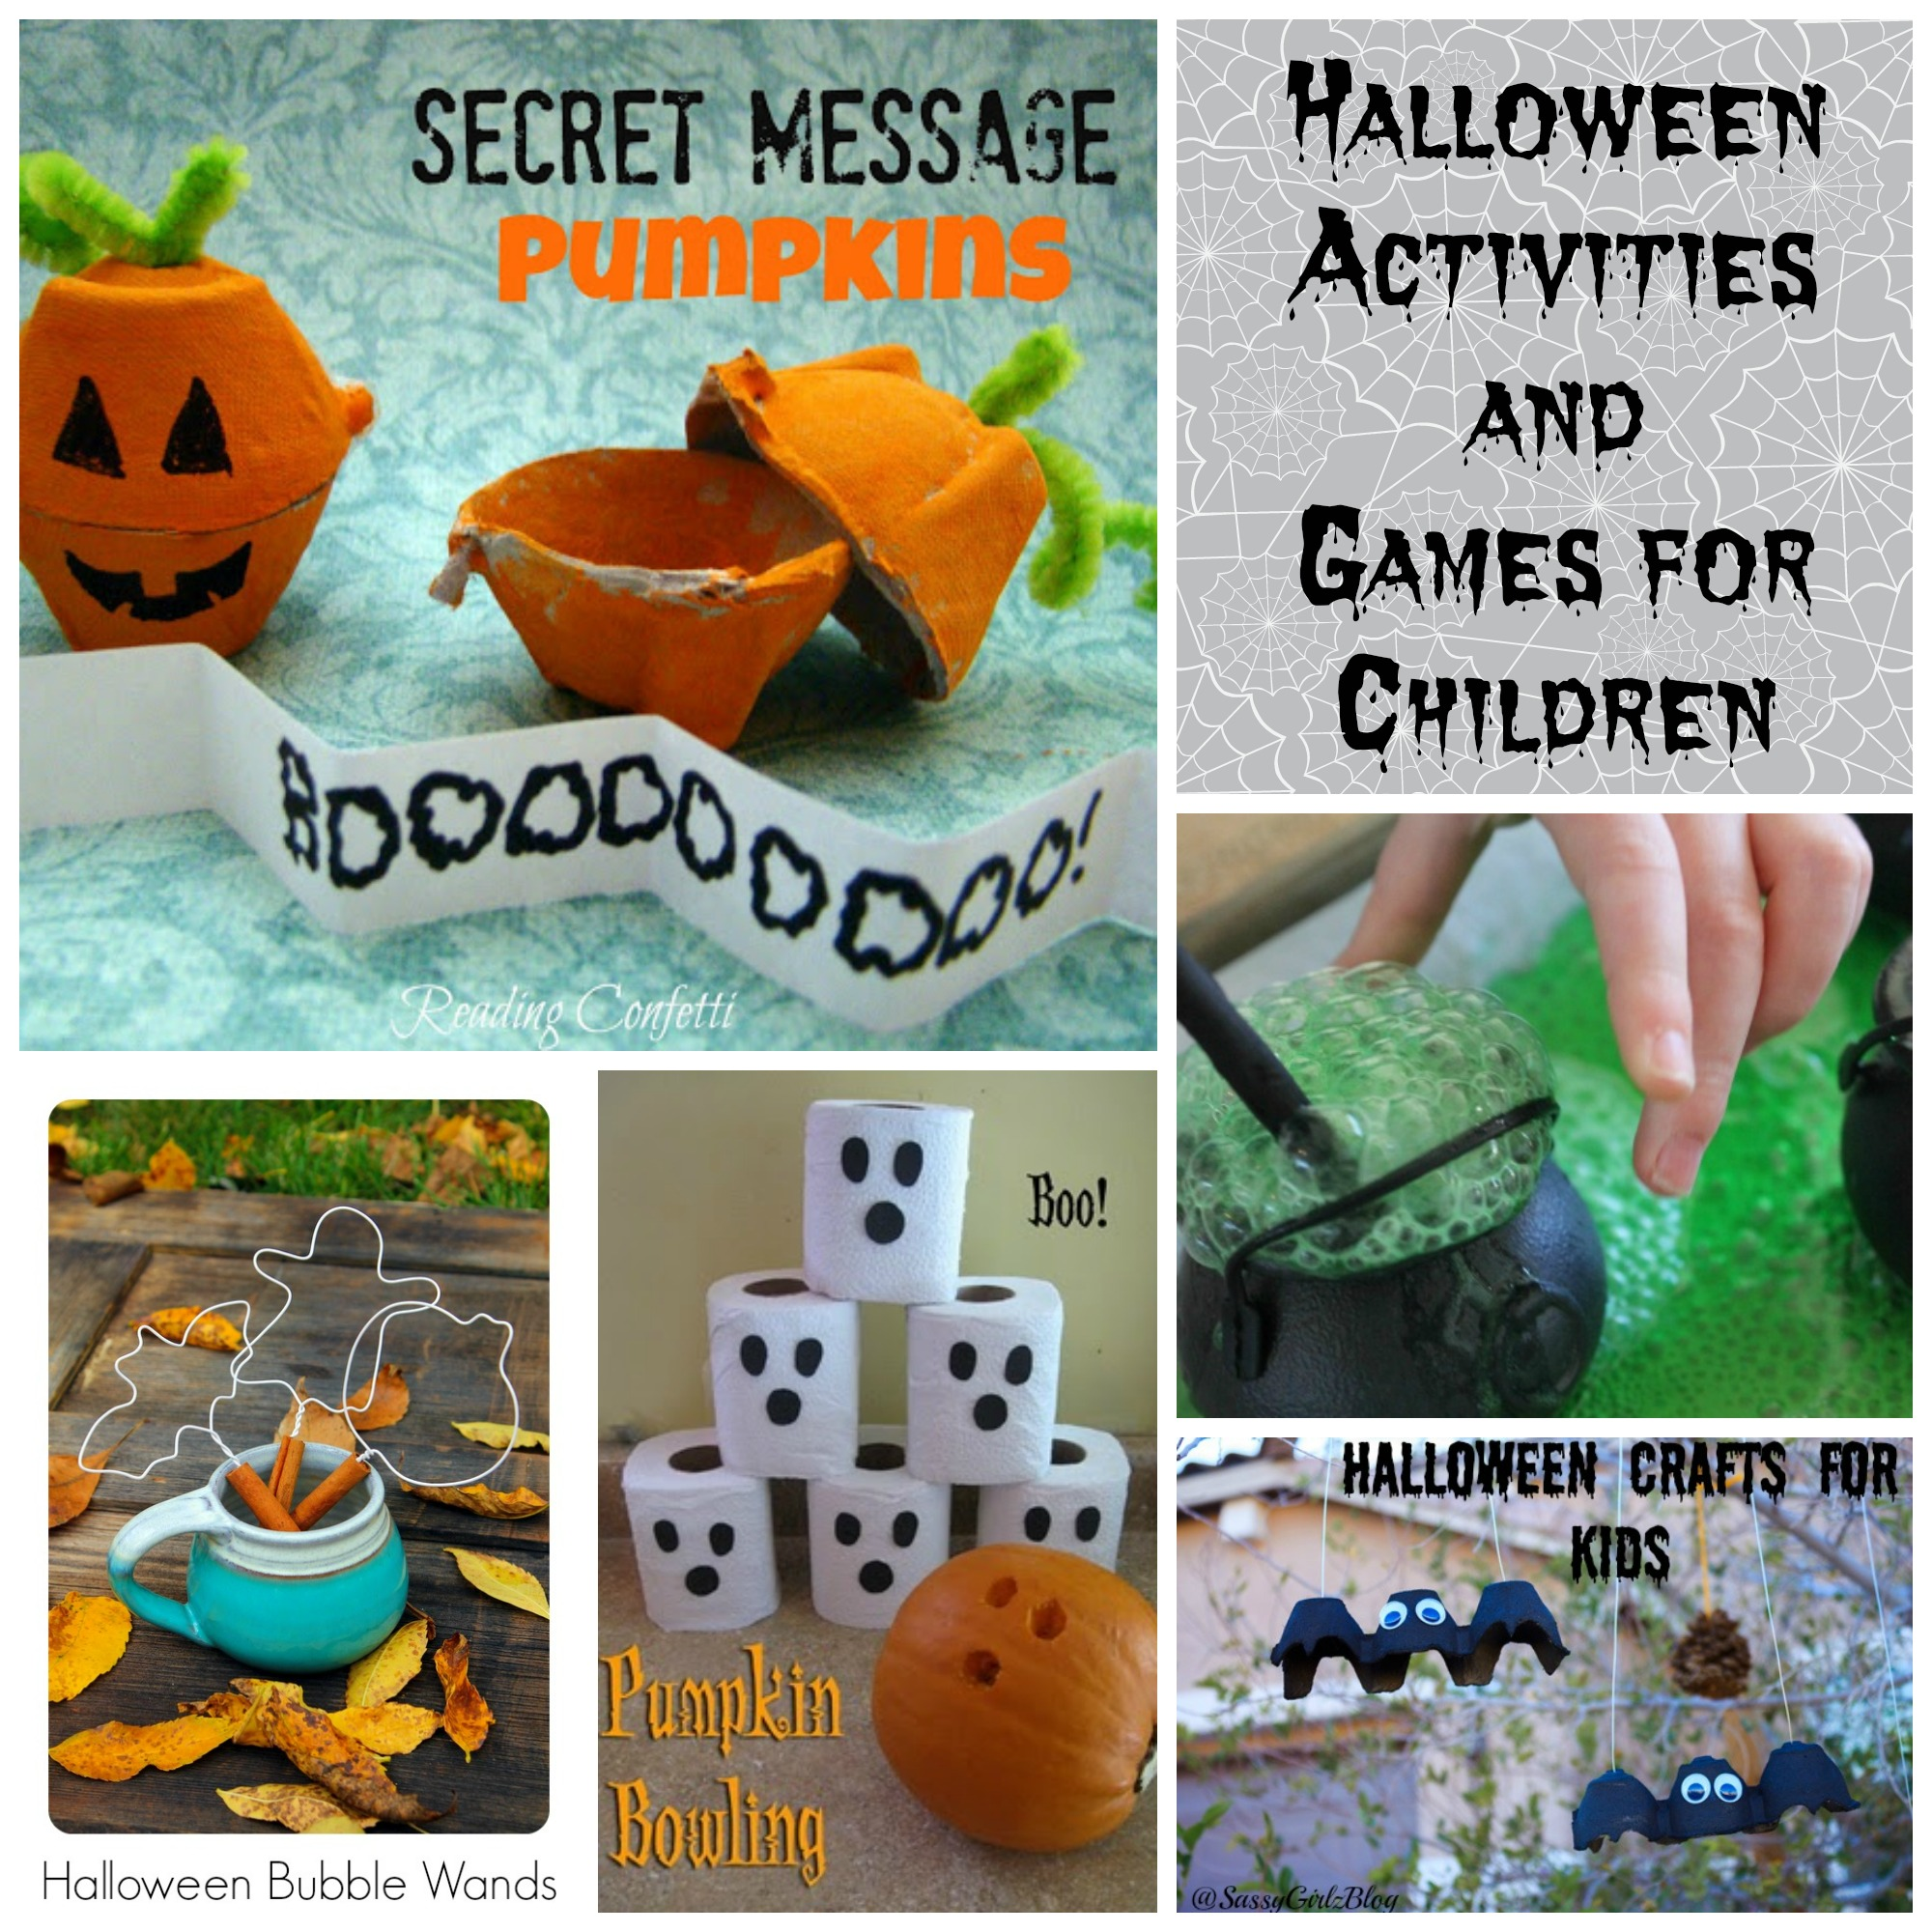 halloween projects for preschoolers Create some spooky fun with free halloween crafts and quick decoration ideas easy at home projects for halloween ghosts, wreaths and diy kids halloween costumes try our monster banner ideas made with felt, pumpkin crafts for decorations and witches, monsters and ghost party crafts for all ages to enjoy.